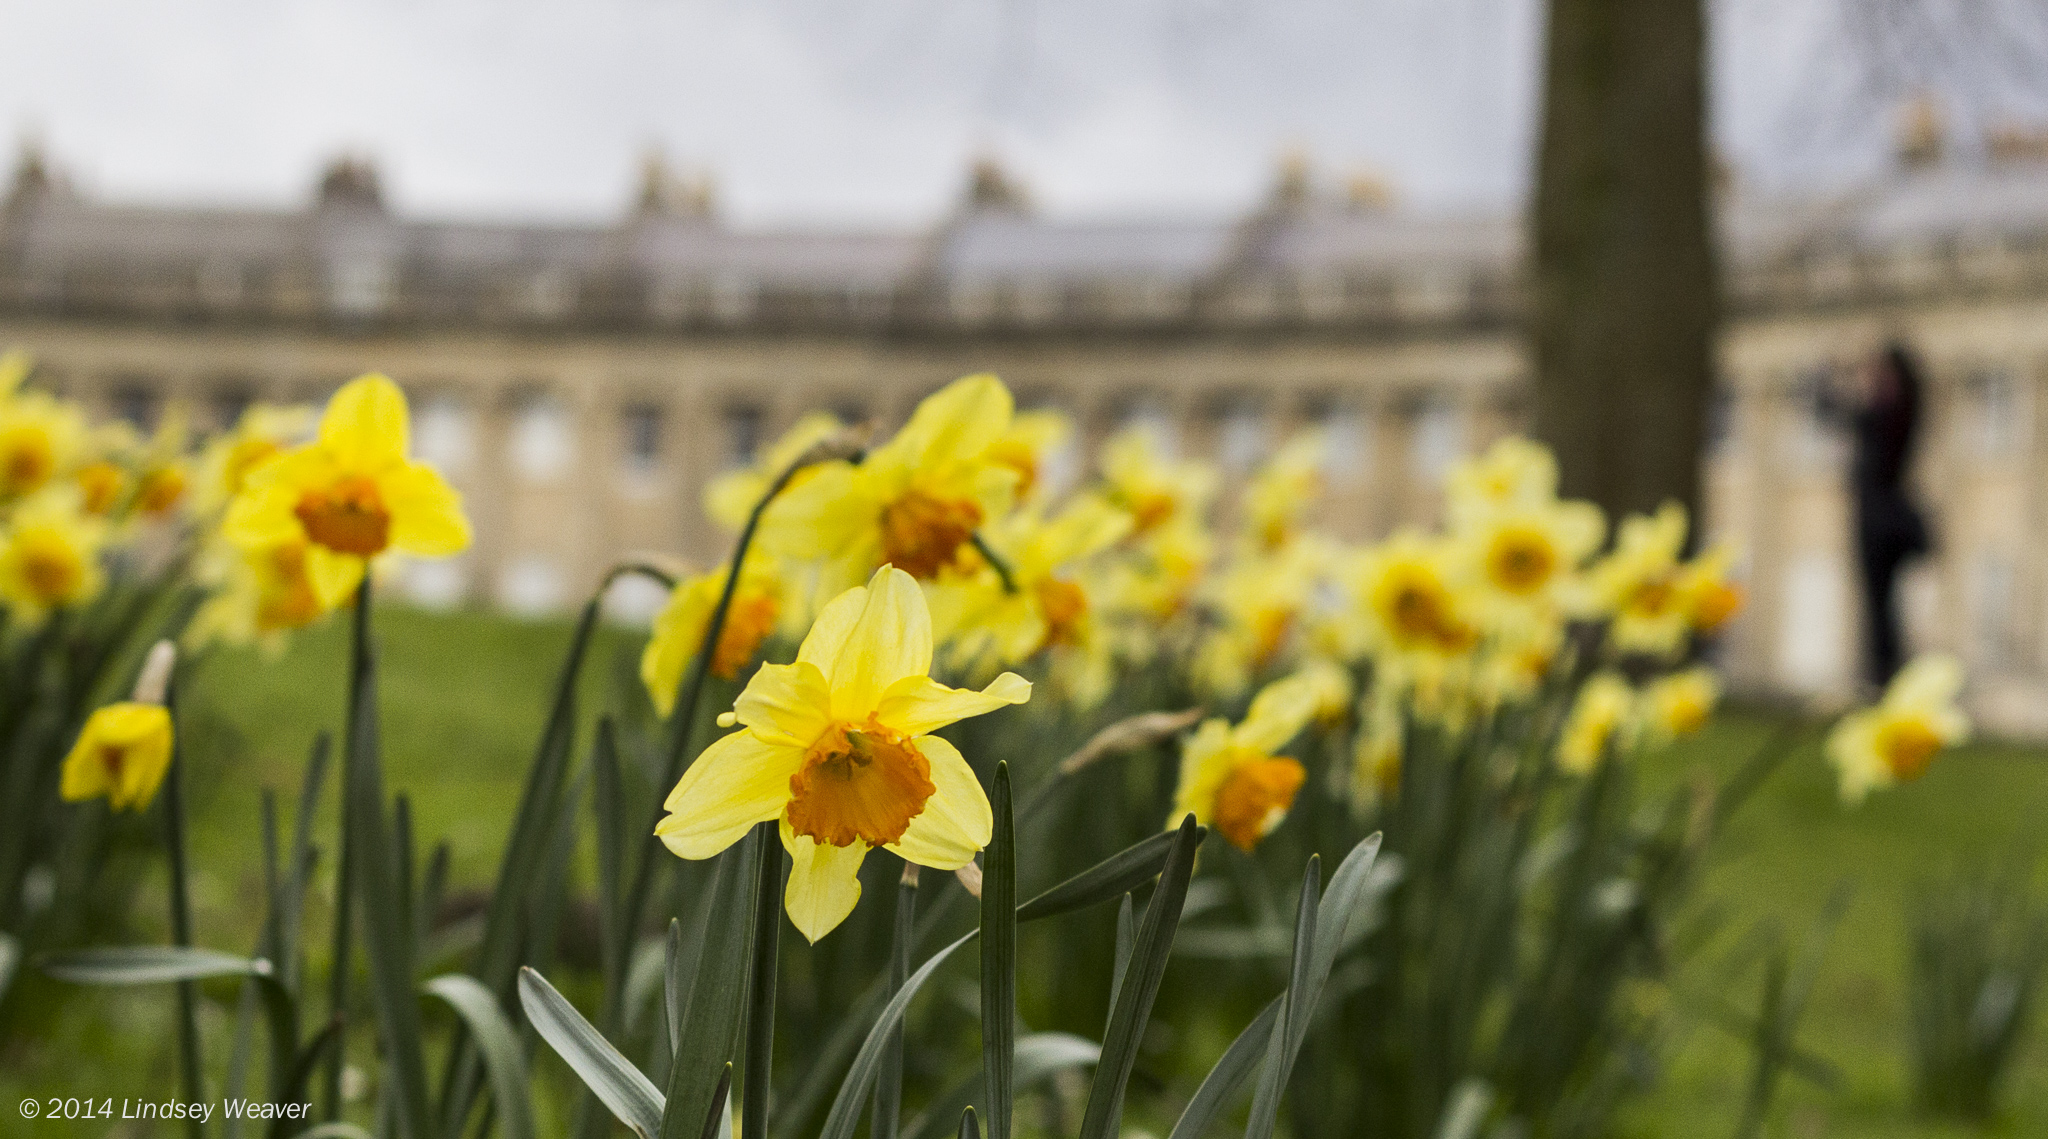 Royal Crescent daffodils